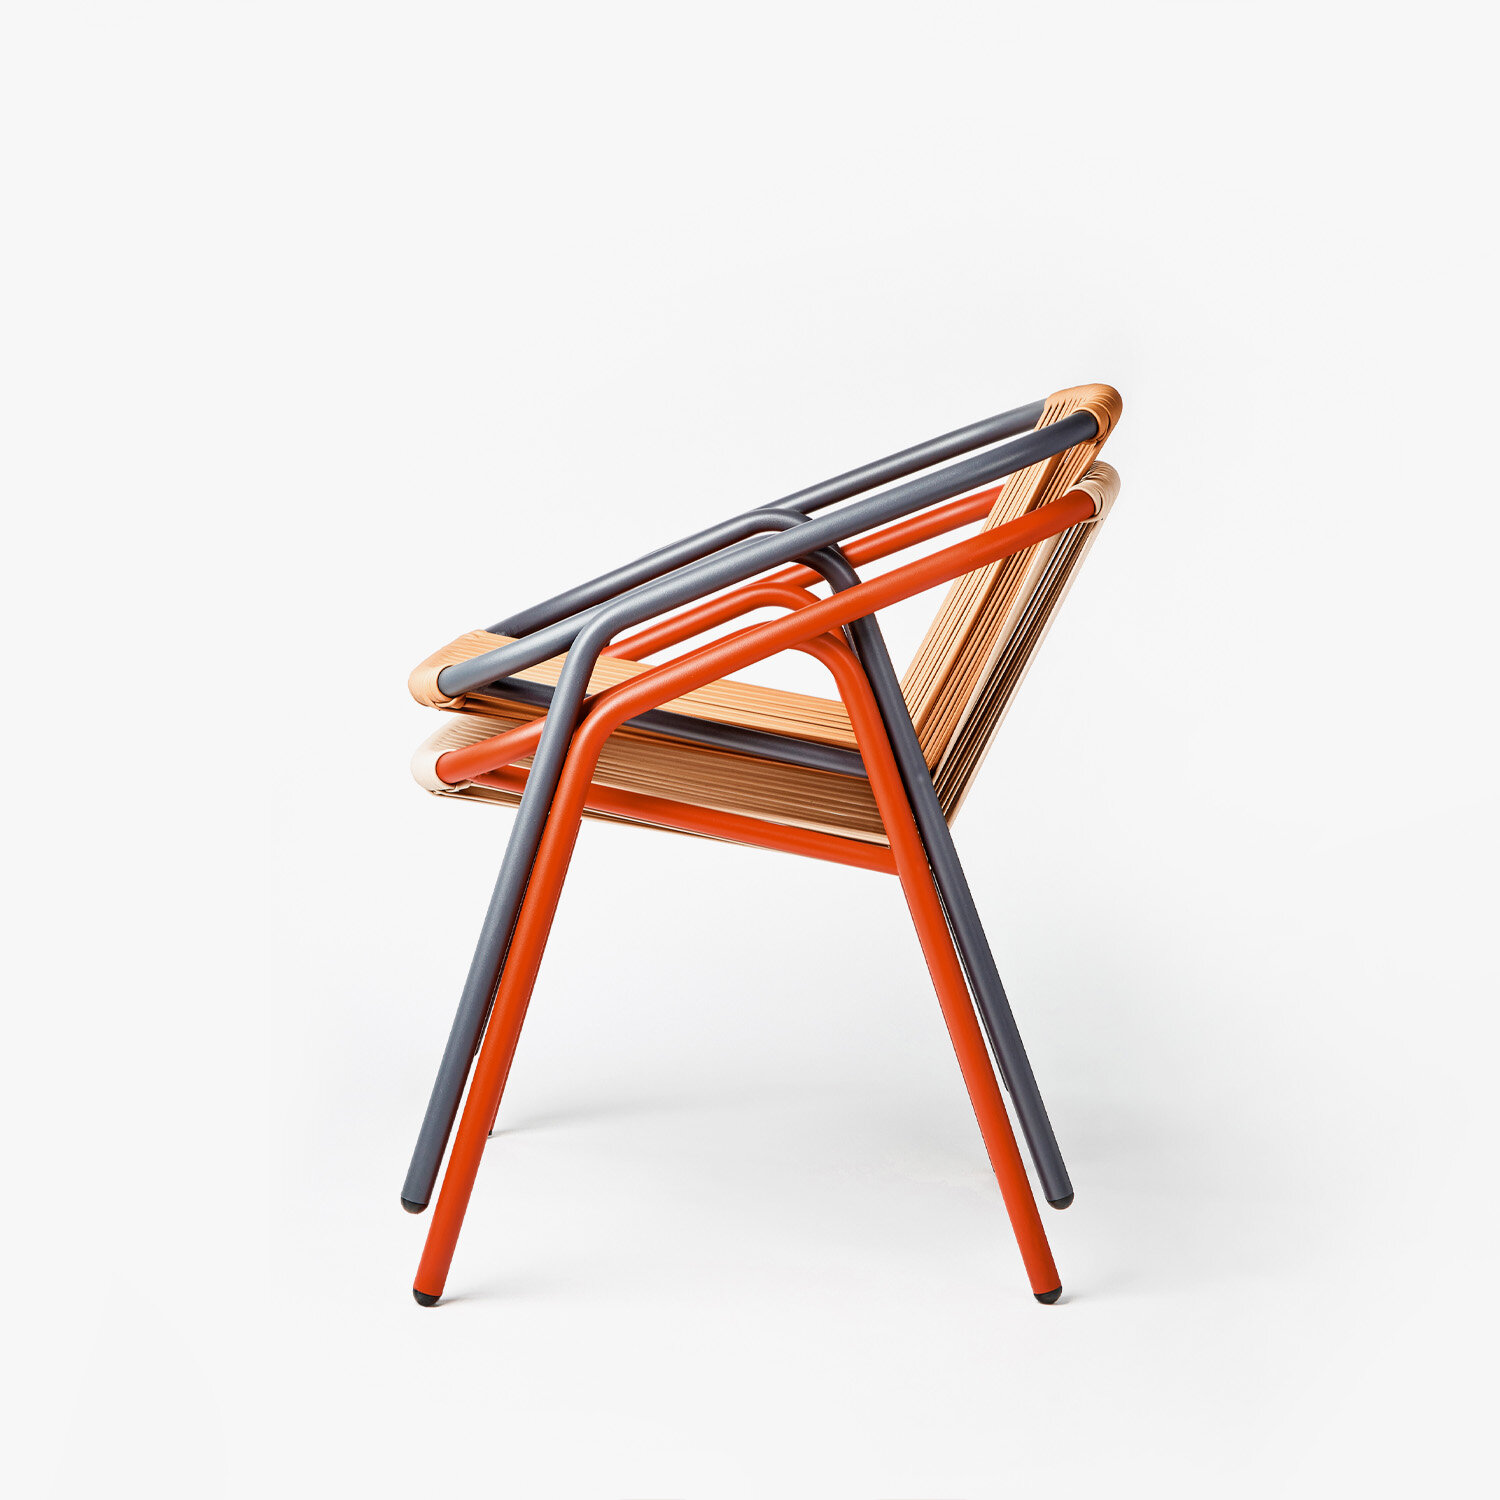 NEW PERSPECTIVES - Shapes and construction are taken from old cane chairs and they are addapted to Aluminum and new production methods. The result is a piece that reminds the classic chairs but it adds new features.